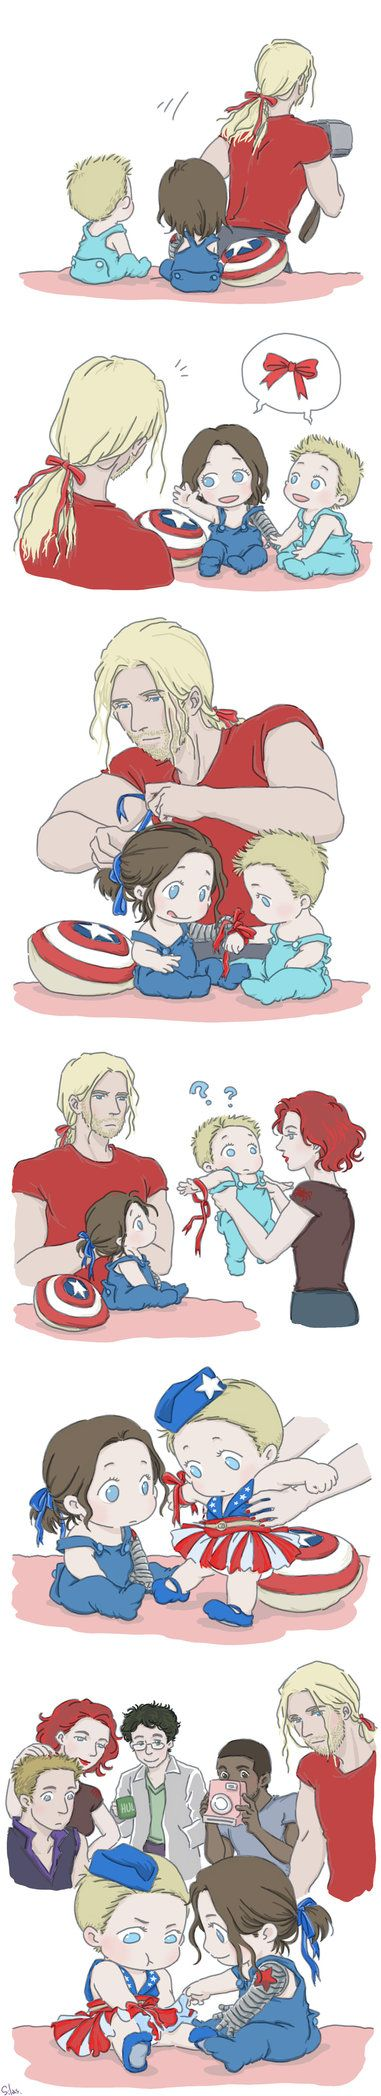 Steve and Bucky babies: Ribbon by SilasSamle on DeviantArt